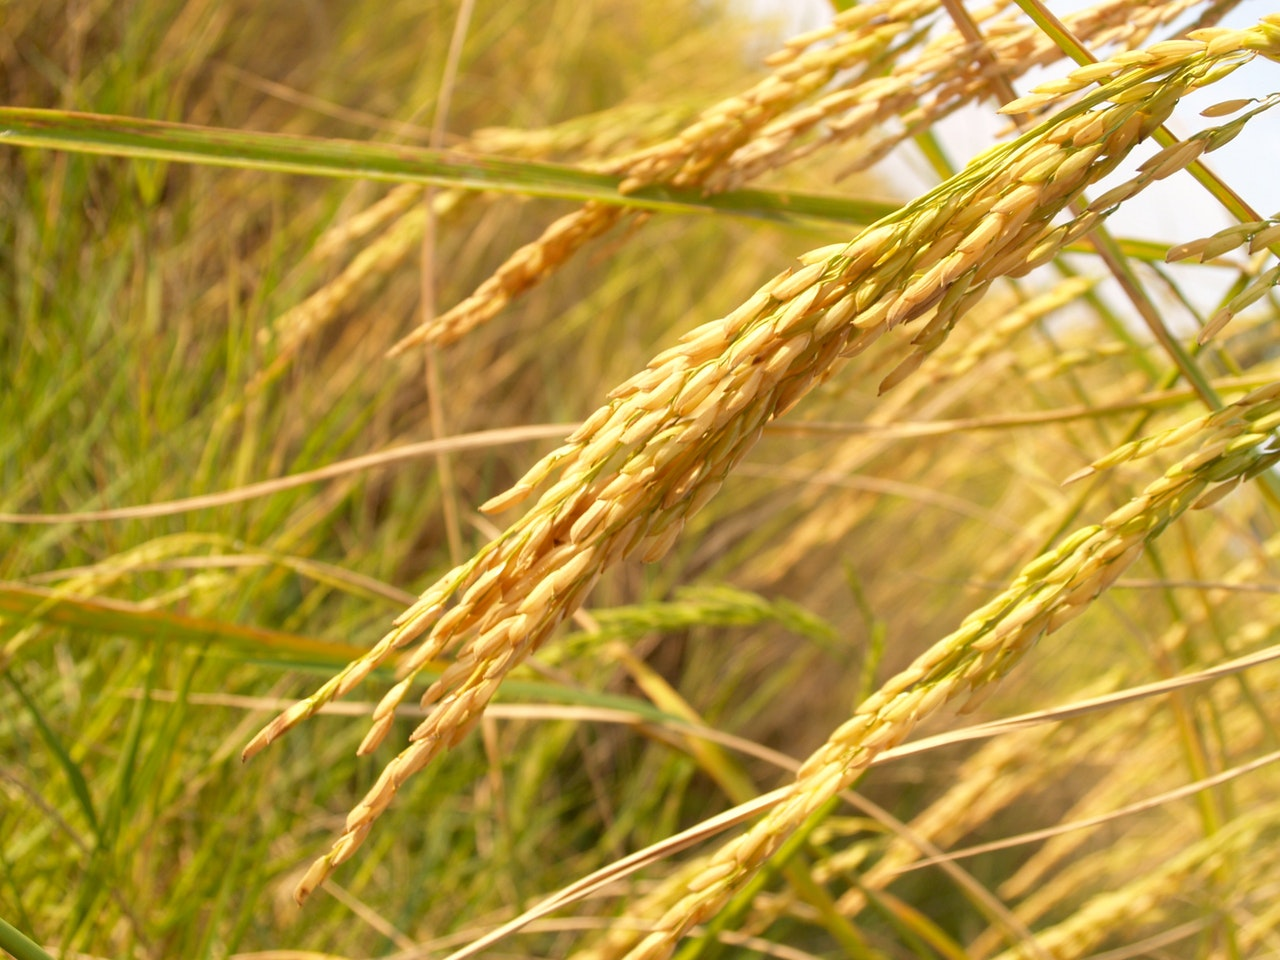 Rice Suppliers In Nigeria: Rice Sellers & Buyers - Globexia